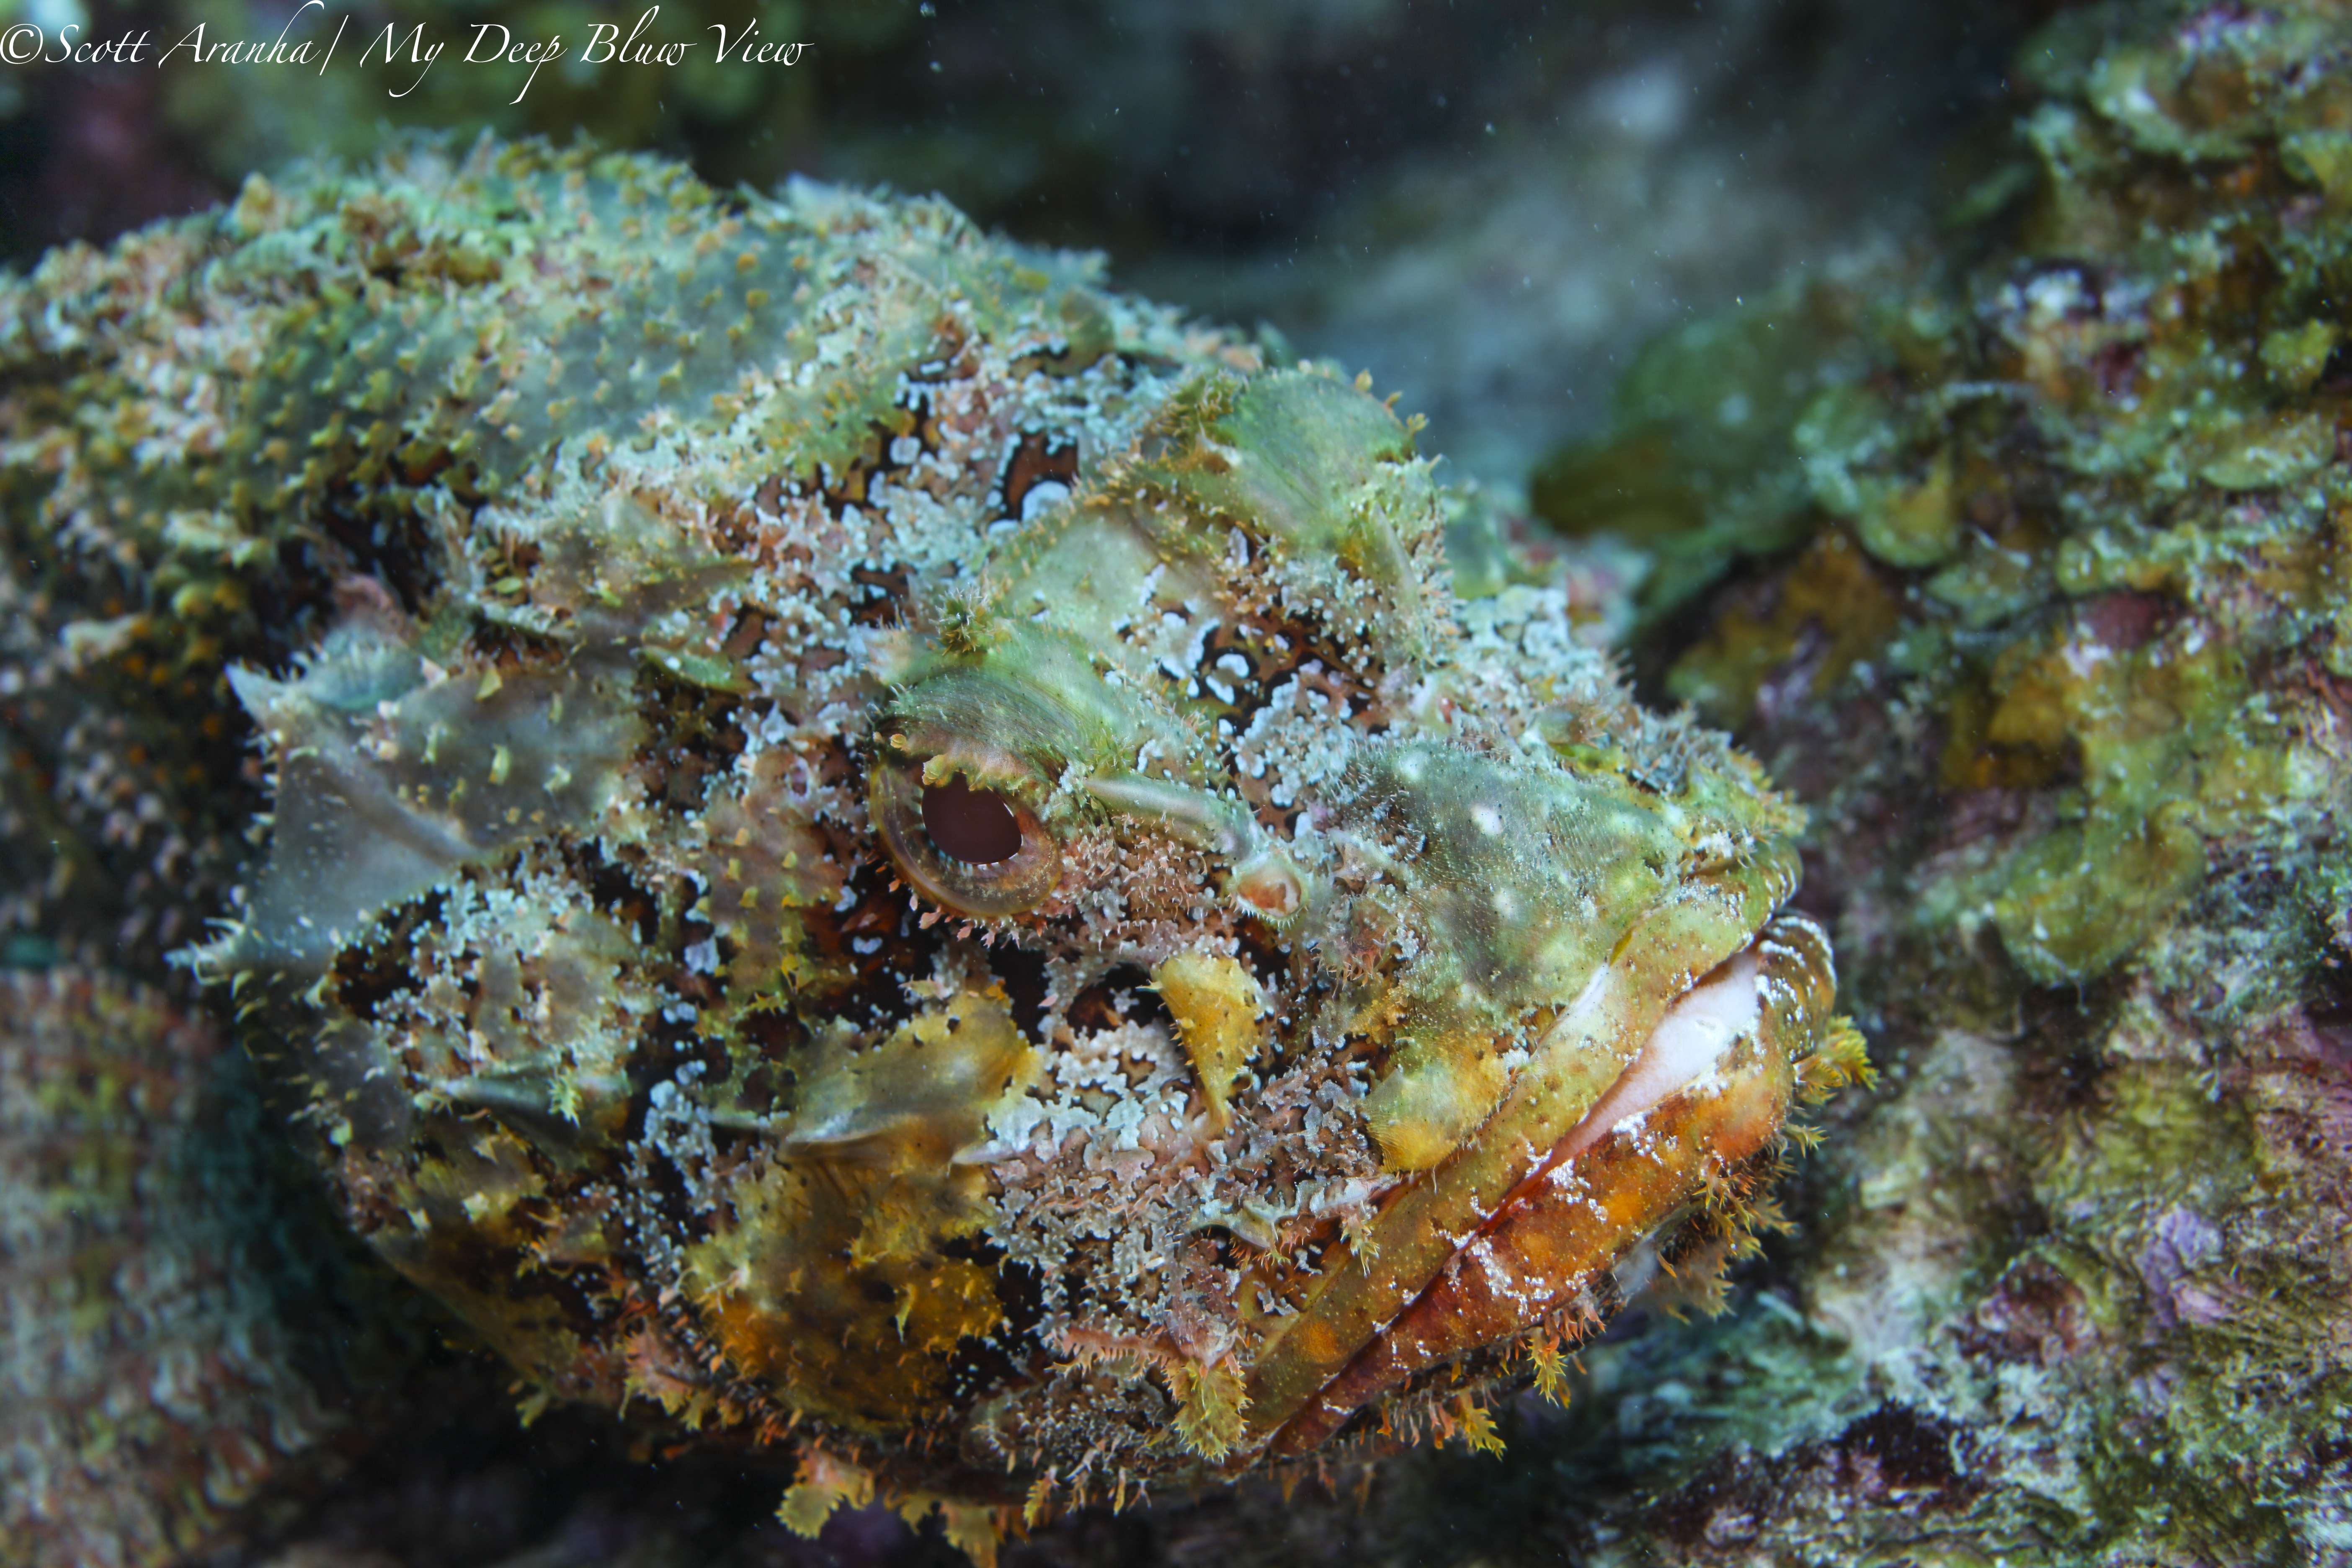 Wreck and Reef030.JPG